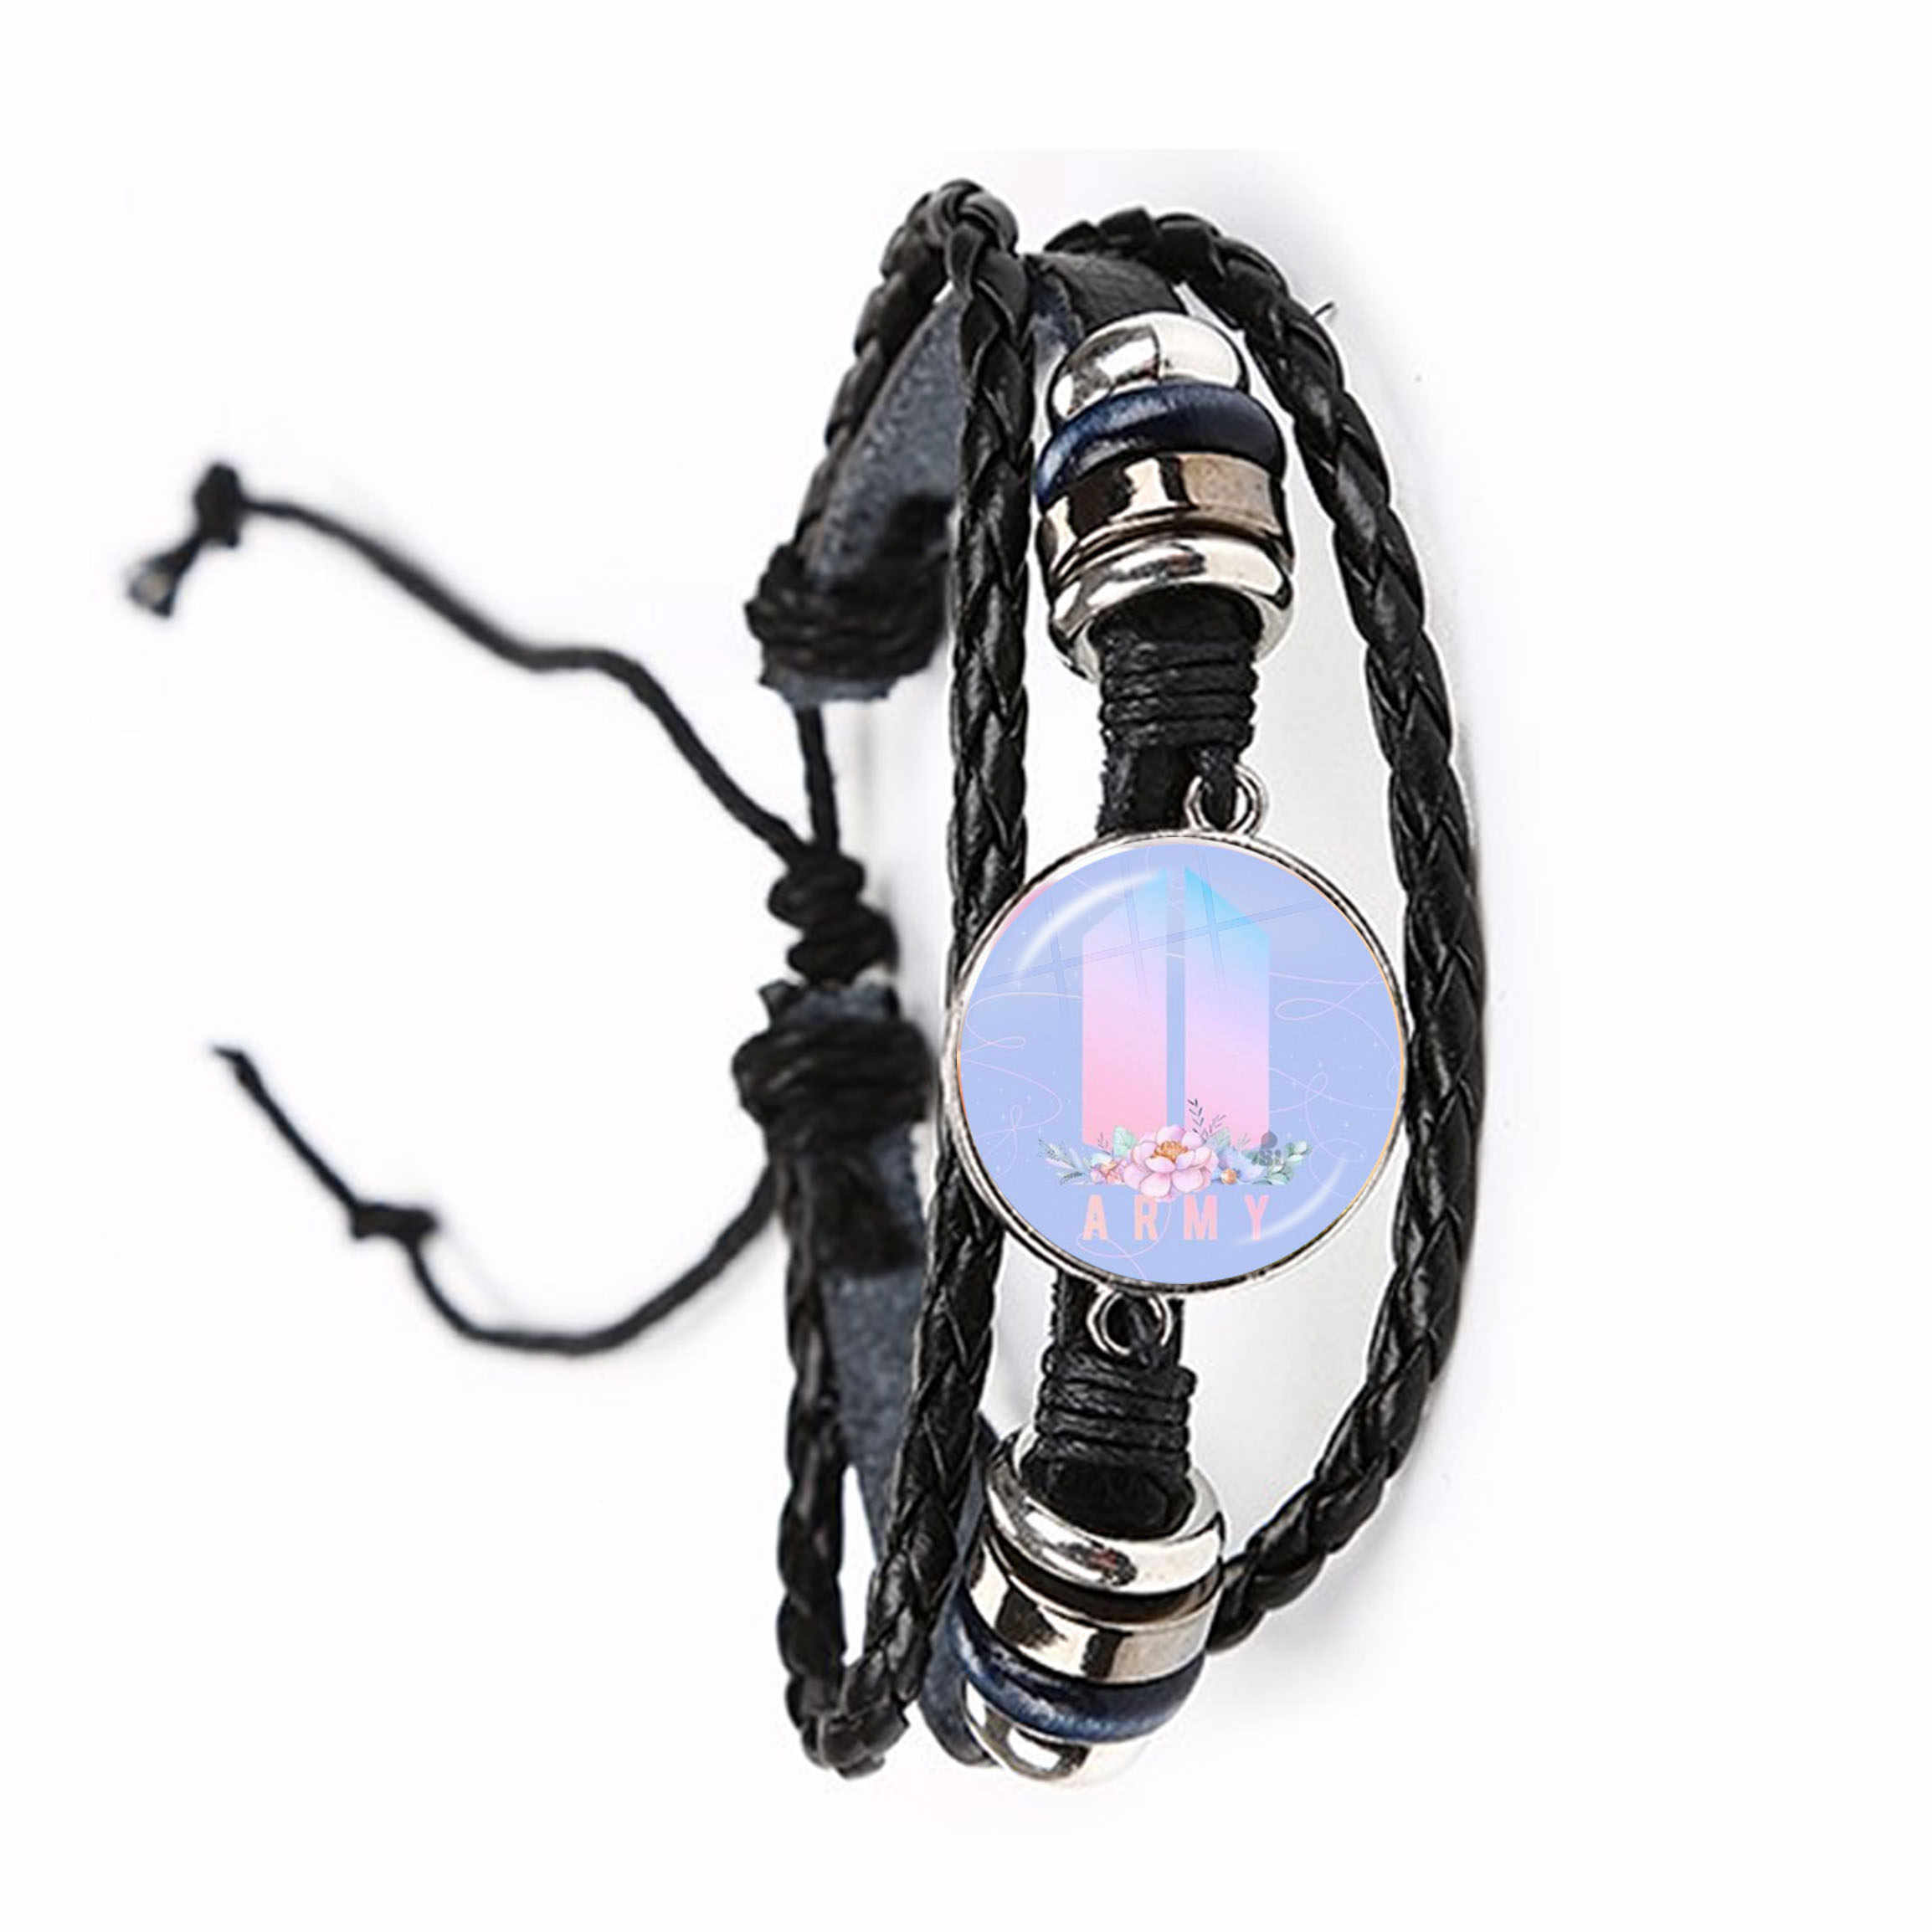 Army Bomb Glass Dome Leather Bracelet Kpop BT21 Jewelry K-pop Boys Accessories Black/Brown Bangle For Fans Album Love Yourself